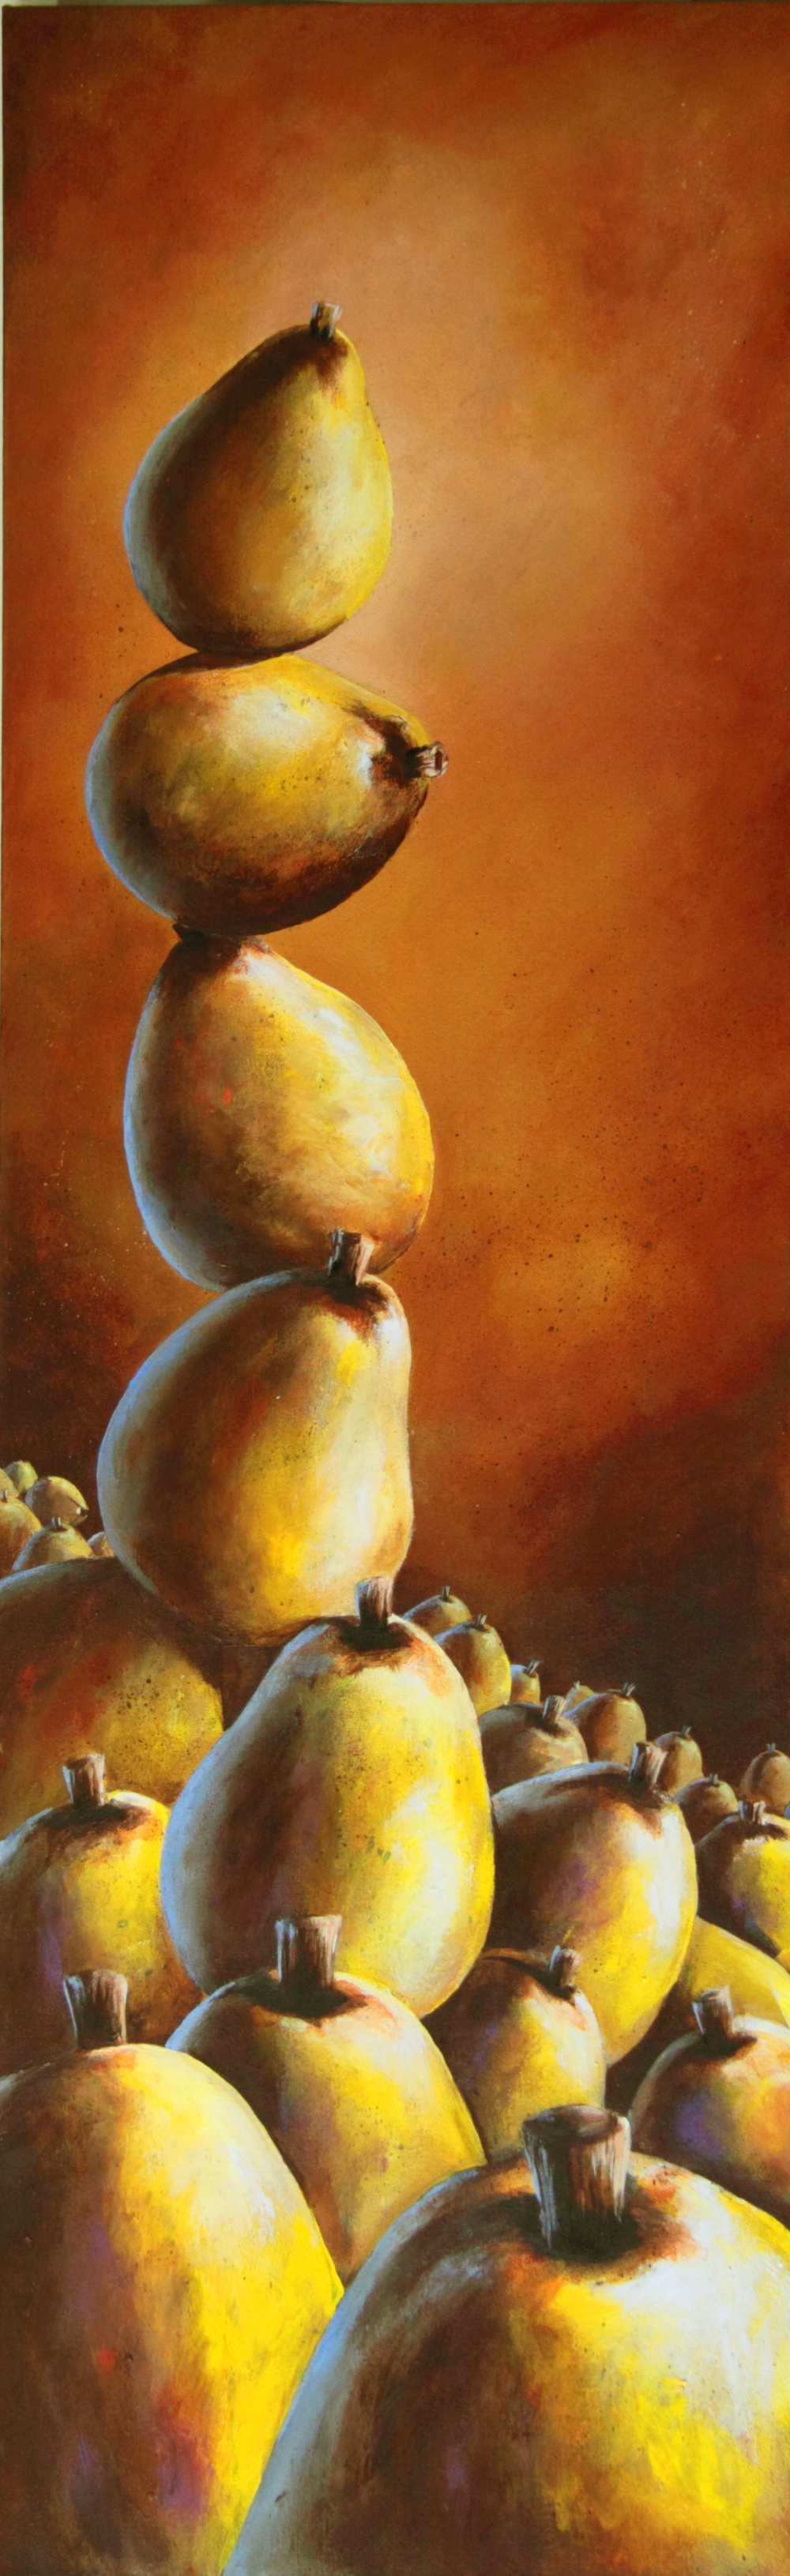 bill_higginson_balancing act-surrealism_painting-acrylic-painting-pears-fruit-canvas